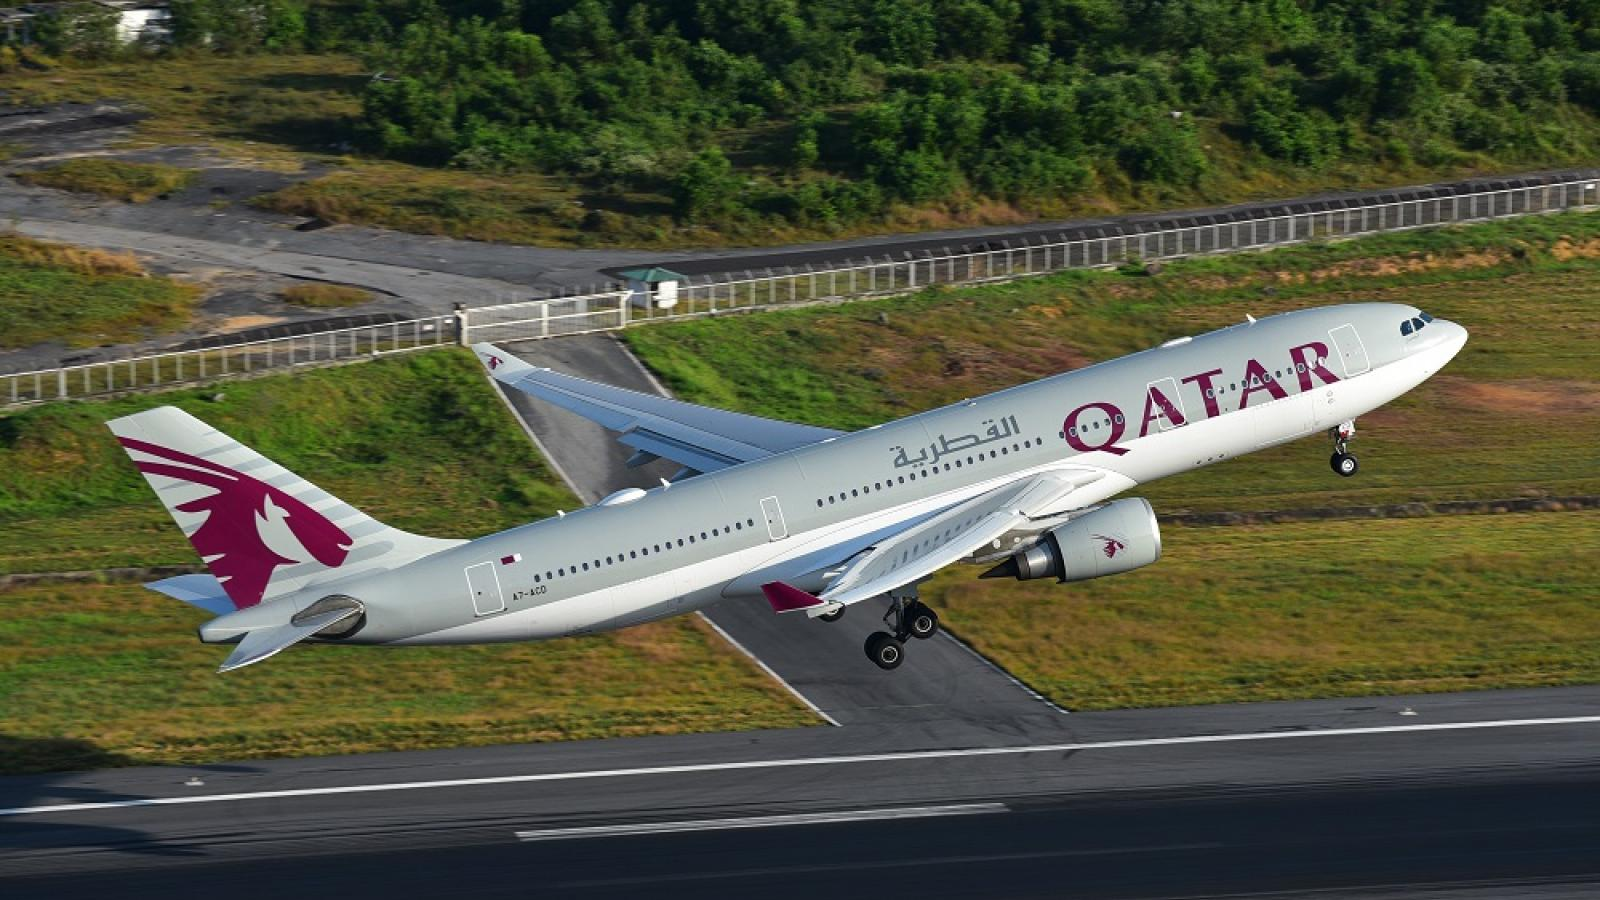 All incoming flights to Qatar are cancelled